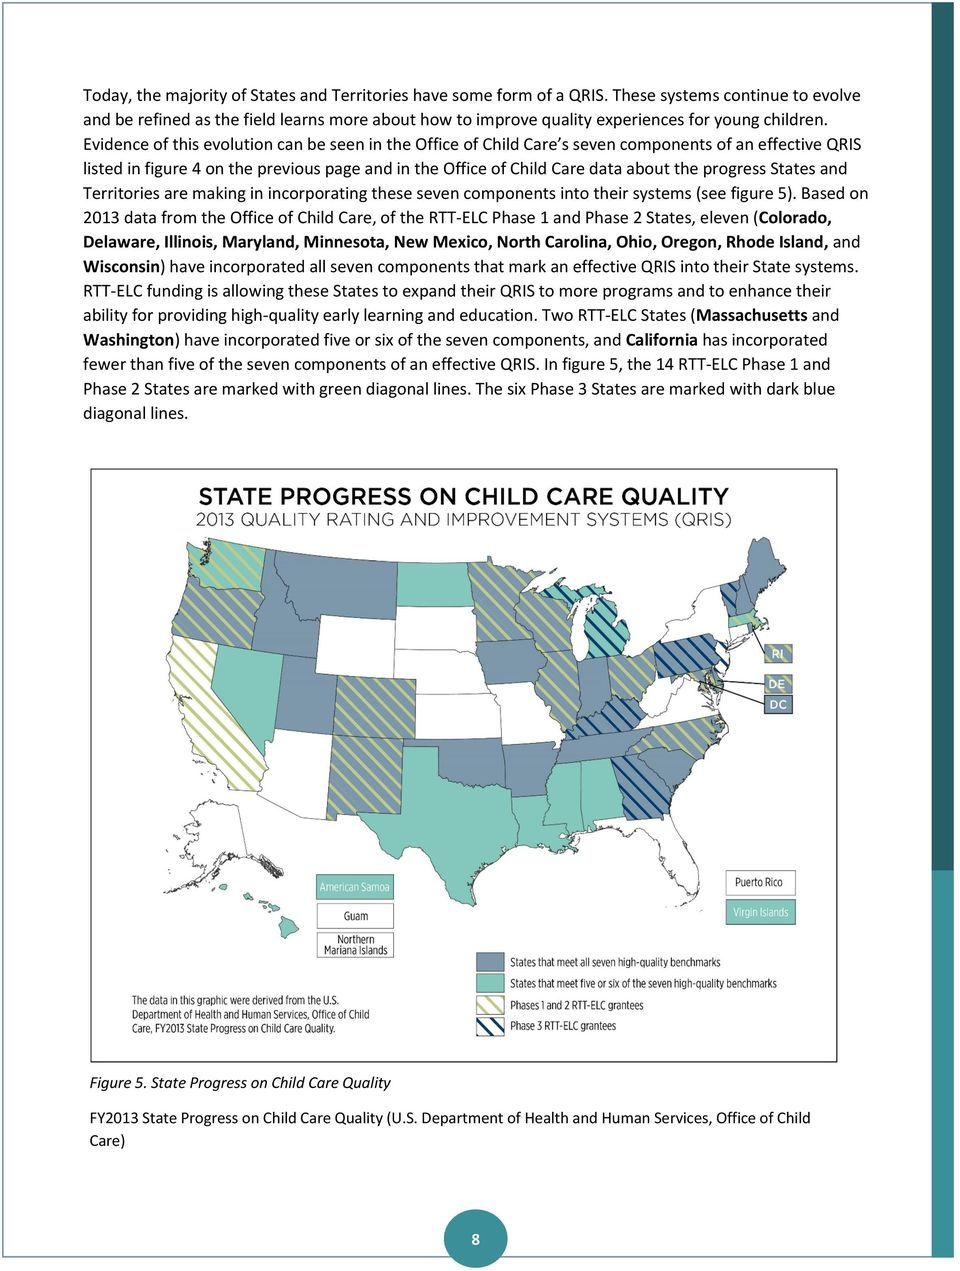 Evidence of this evolution can be seen in the Office of Child Care s seven components of an effective QRIS listed in figure 4 on the previous page and in the Office of Child Care data about the